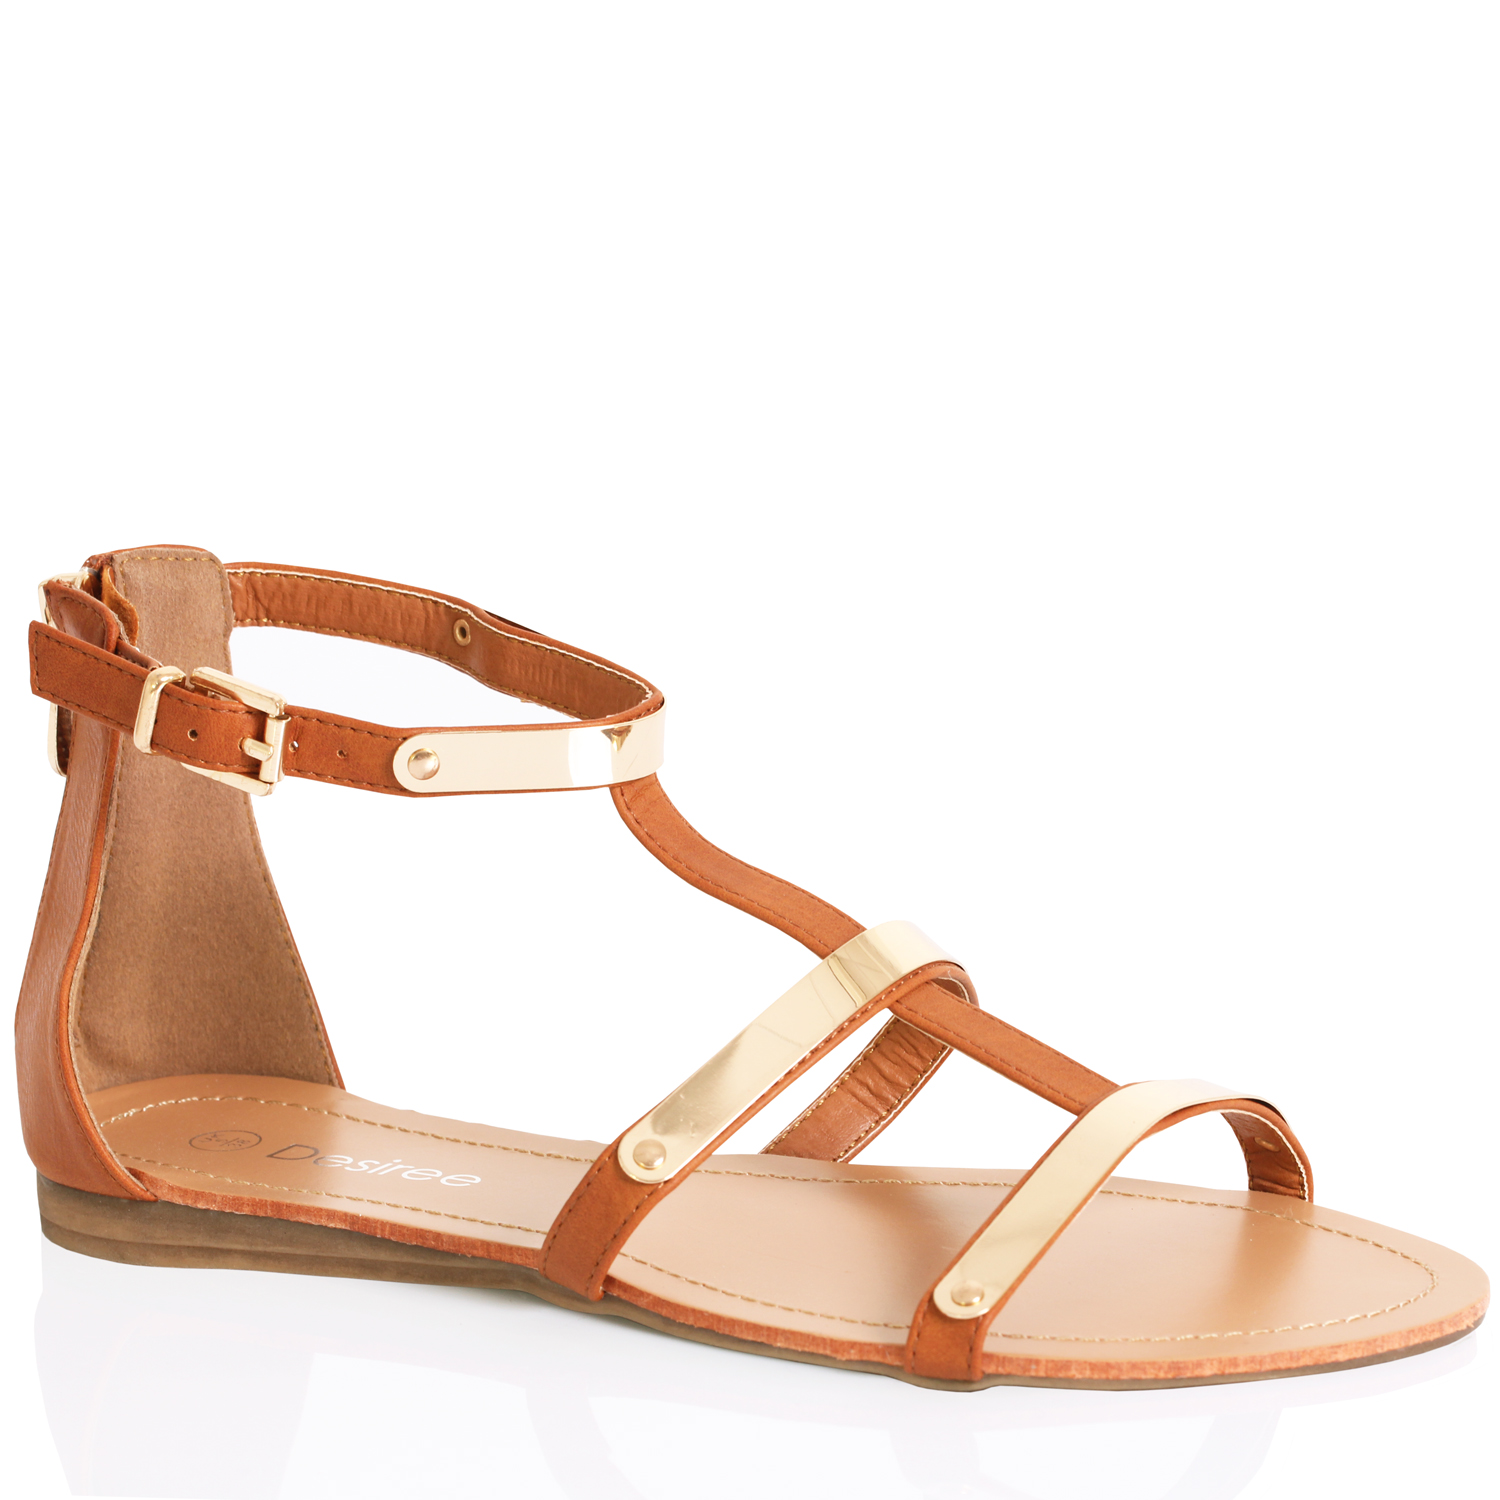 WOMENS-LADIES-FLAT-GLADIATOR-DIAMONTE-TOE-POST-SUMMER-BEACH-HOLIDAY-SANDALS-SIZE